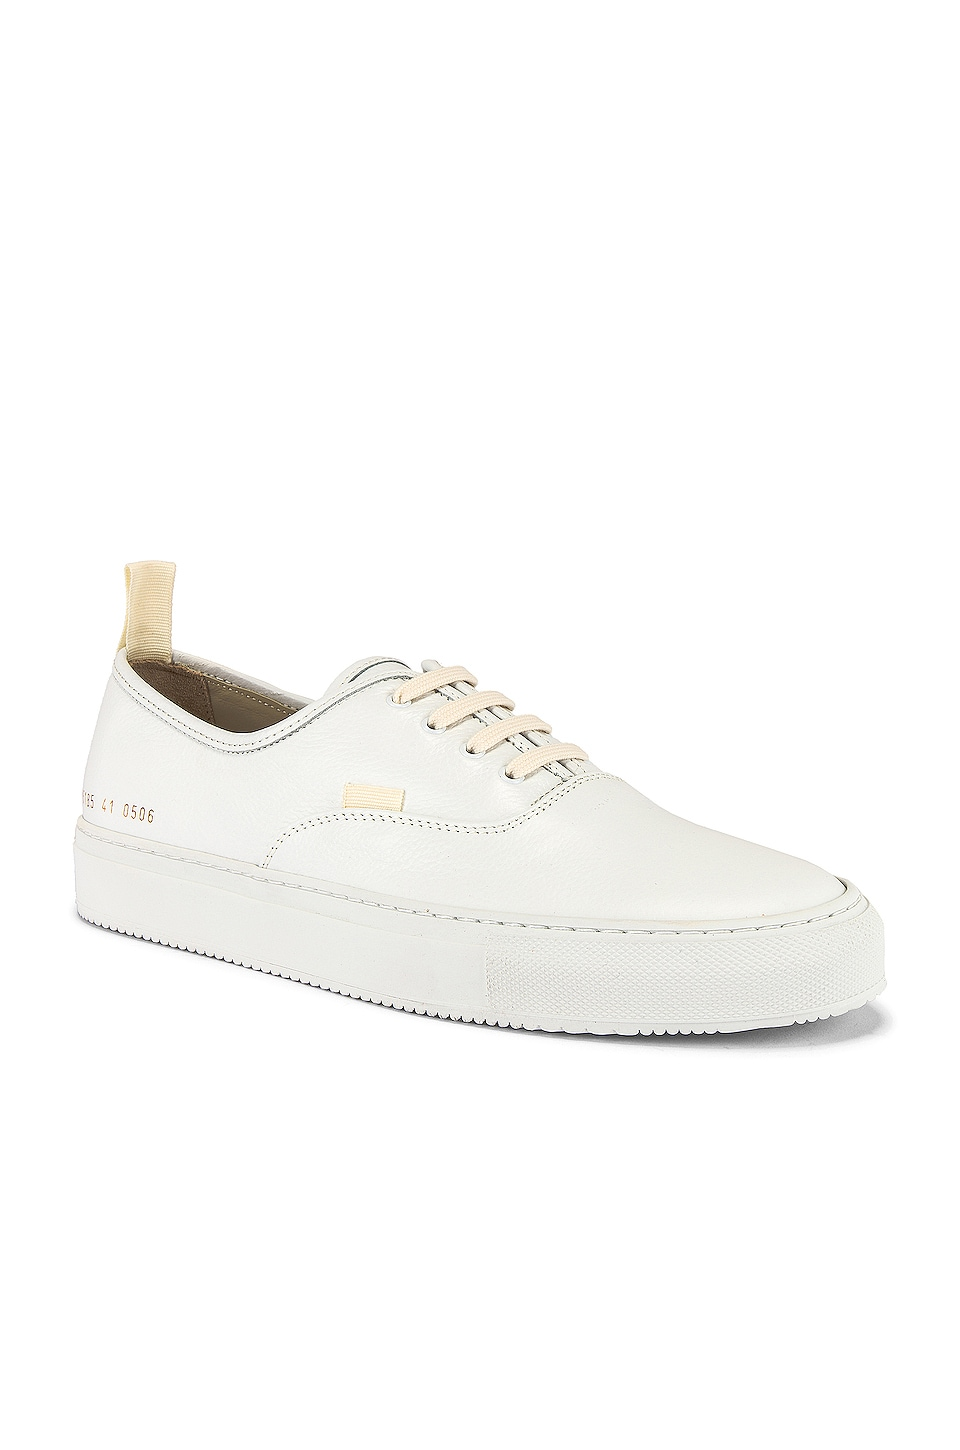 Common Projects Four Hole in Leather Low Sneaker in White